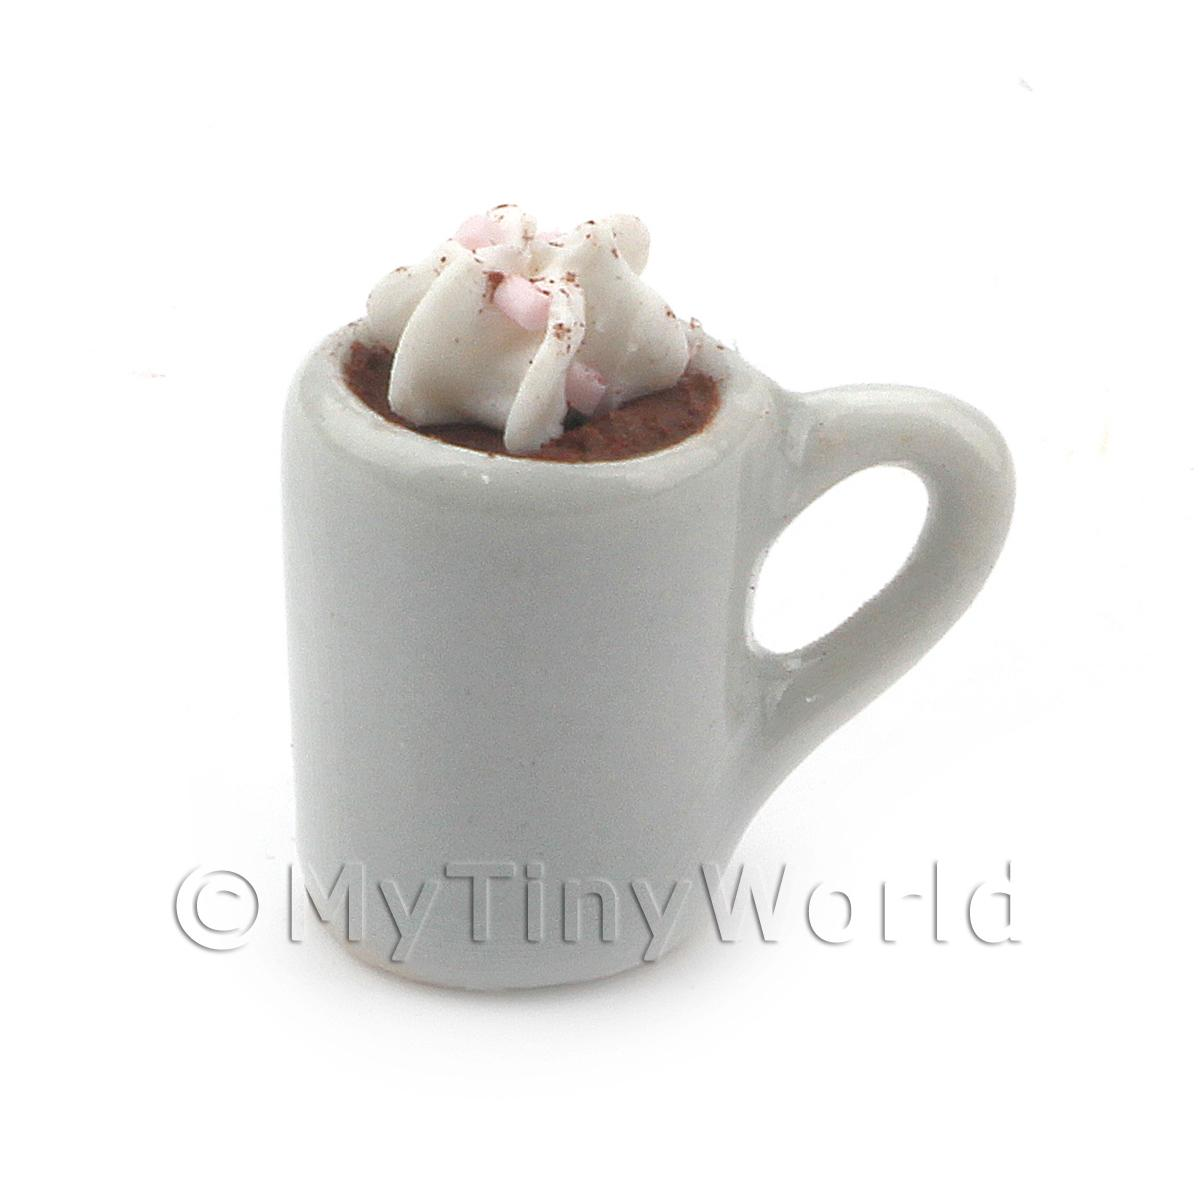 Dolls House Miniature Handmade Mug Of Cream Topped Hot Chocolate